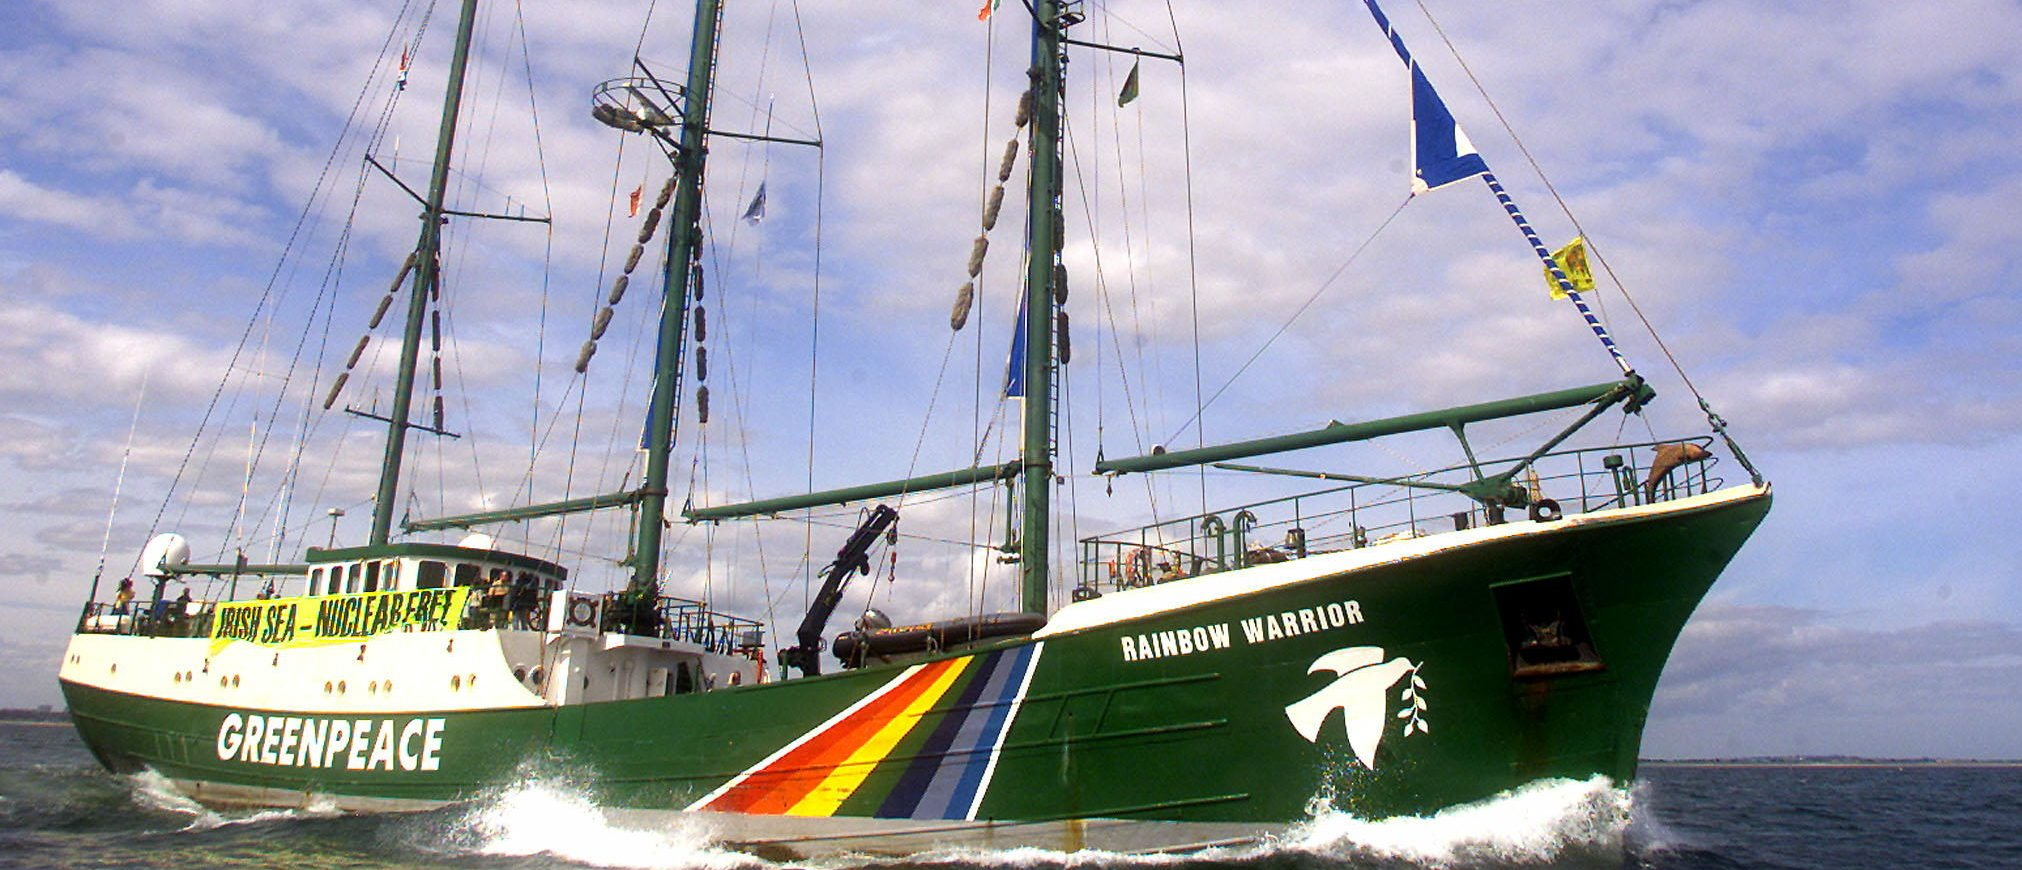 The Greenpeace ship Rainbow Warrior leads a peaceful protest against a cargo of rejected plutonium fuel currently on route from Japan to Sellafield in the north of Britain, in Dublin Bay, Republic of Ireland September 1, 2002. The plutonium ships, Pacific Pintail and the Pacific Teal, are currently mid-south Atlantic and are expected to enter European waters in the first week of September. REUTERS/Paul McErlane.